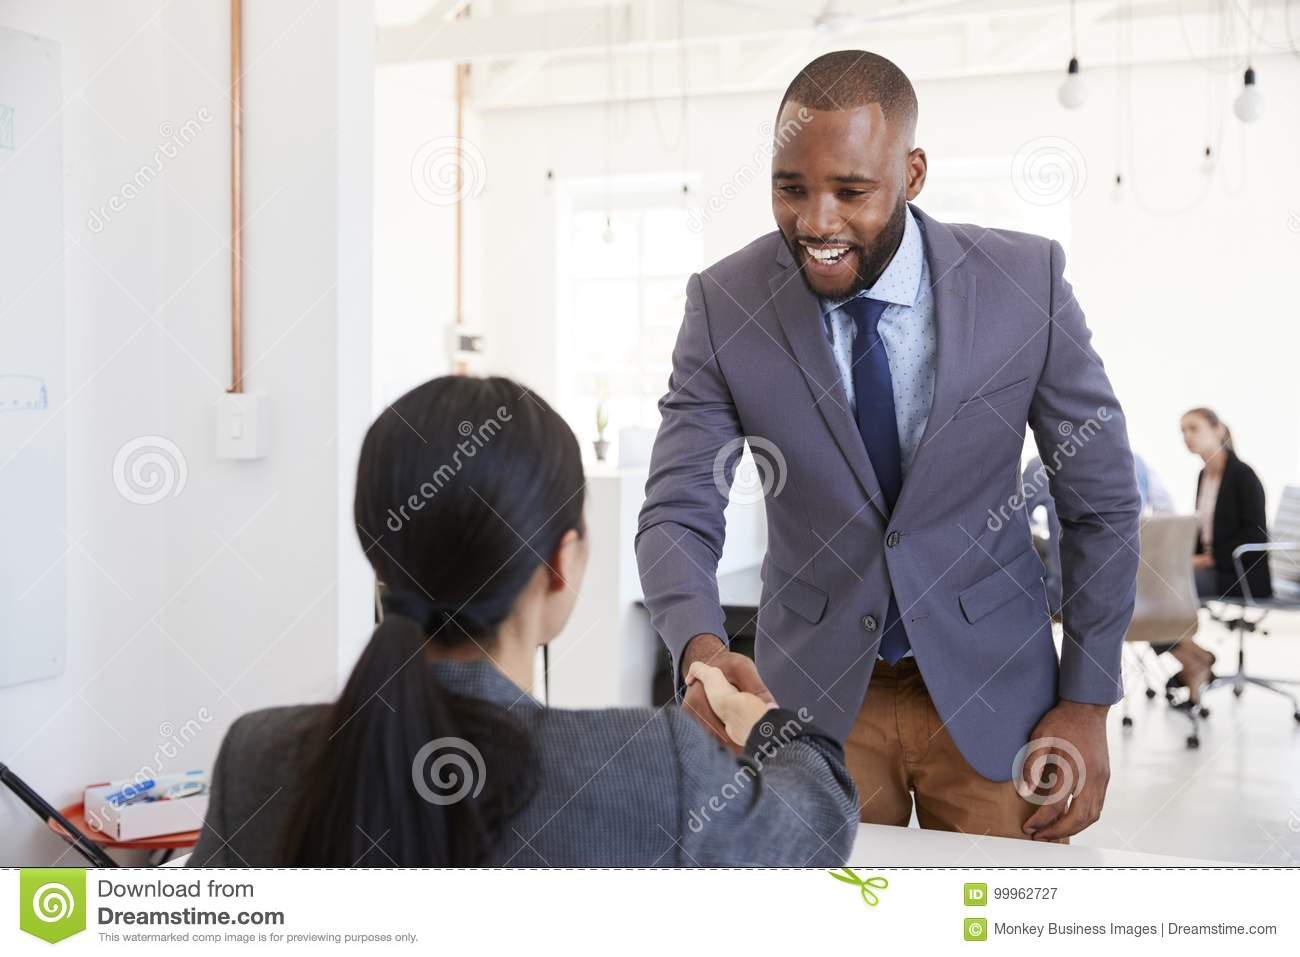 Black businessman and seated woman shaking hands in office